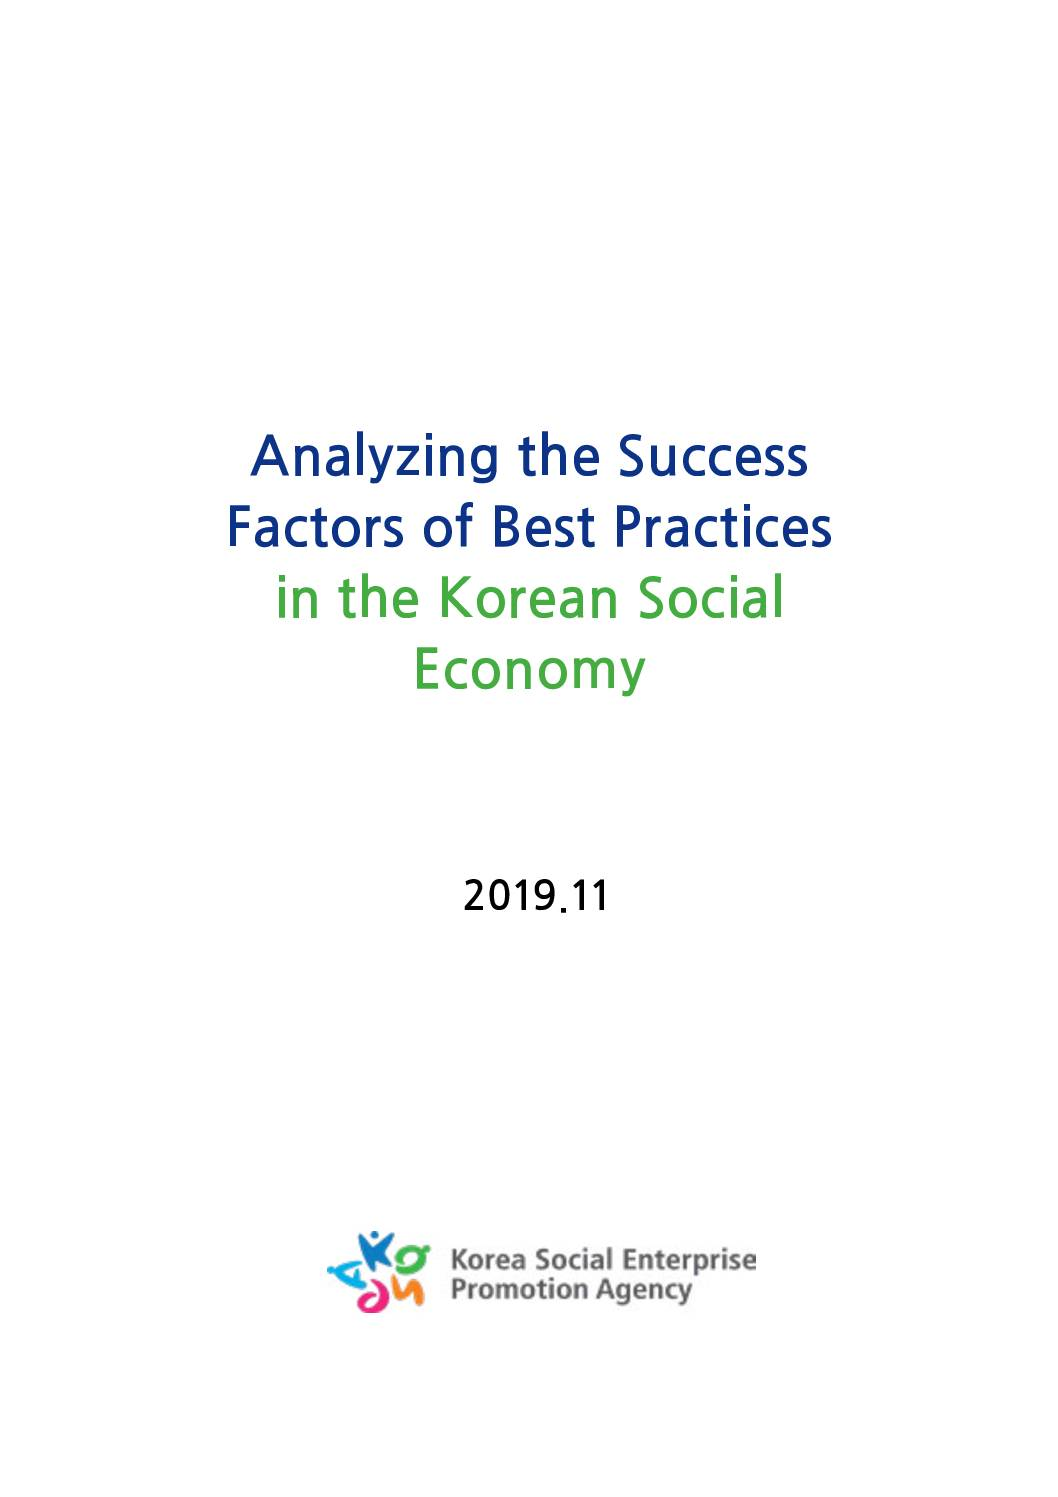 Analyzing the Success Factors of Best Practices in the Korean Social Economy